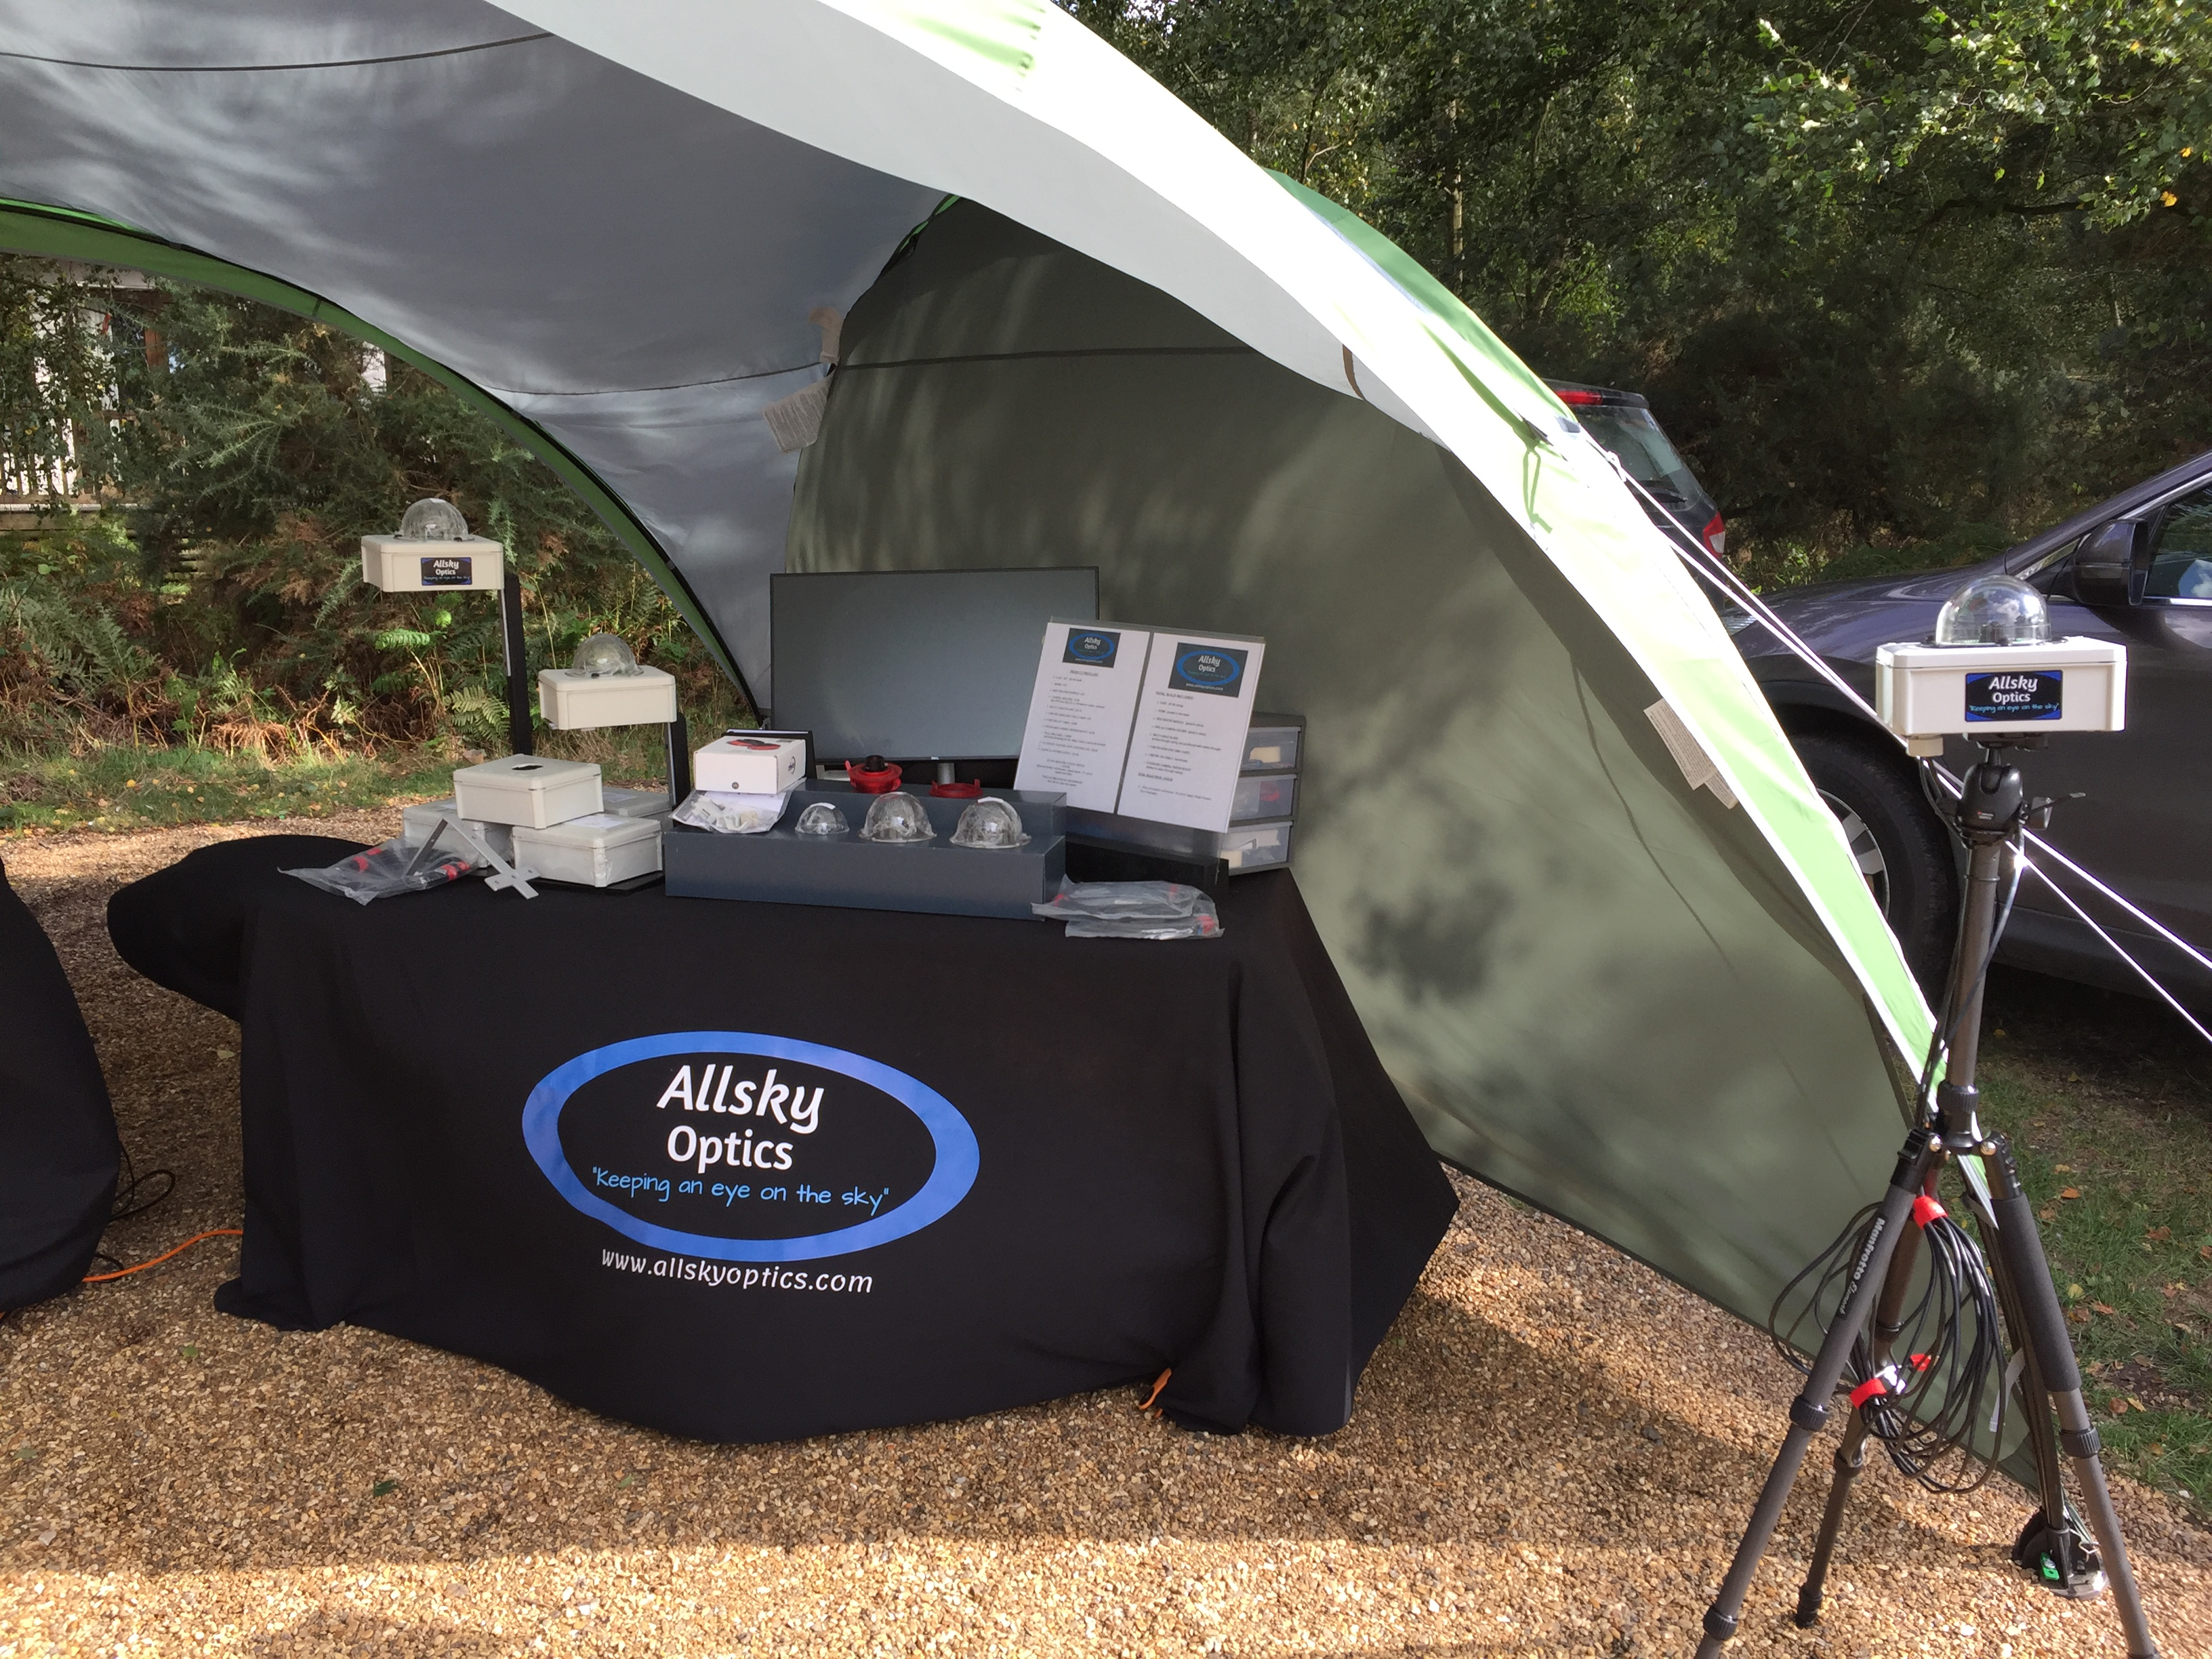 Launching Allsky Optics at kelling Heath, a do or die moment! 31/09/19.